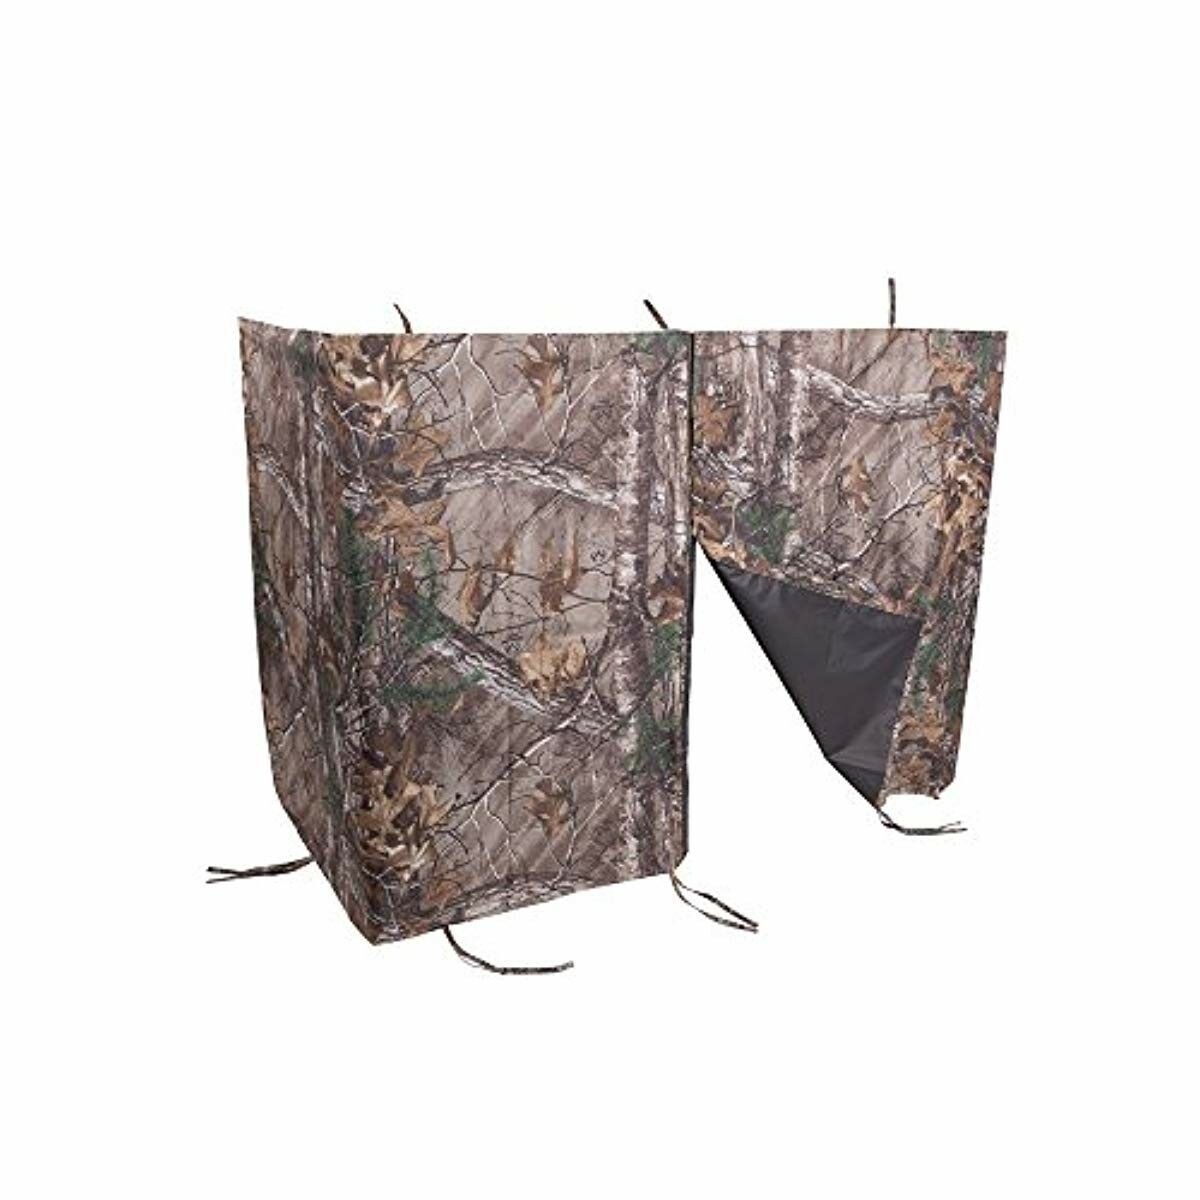 Magnetic Treestand Cover Realtree Hunting Camo Sporting Goods Quiet Entry Exit